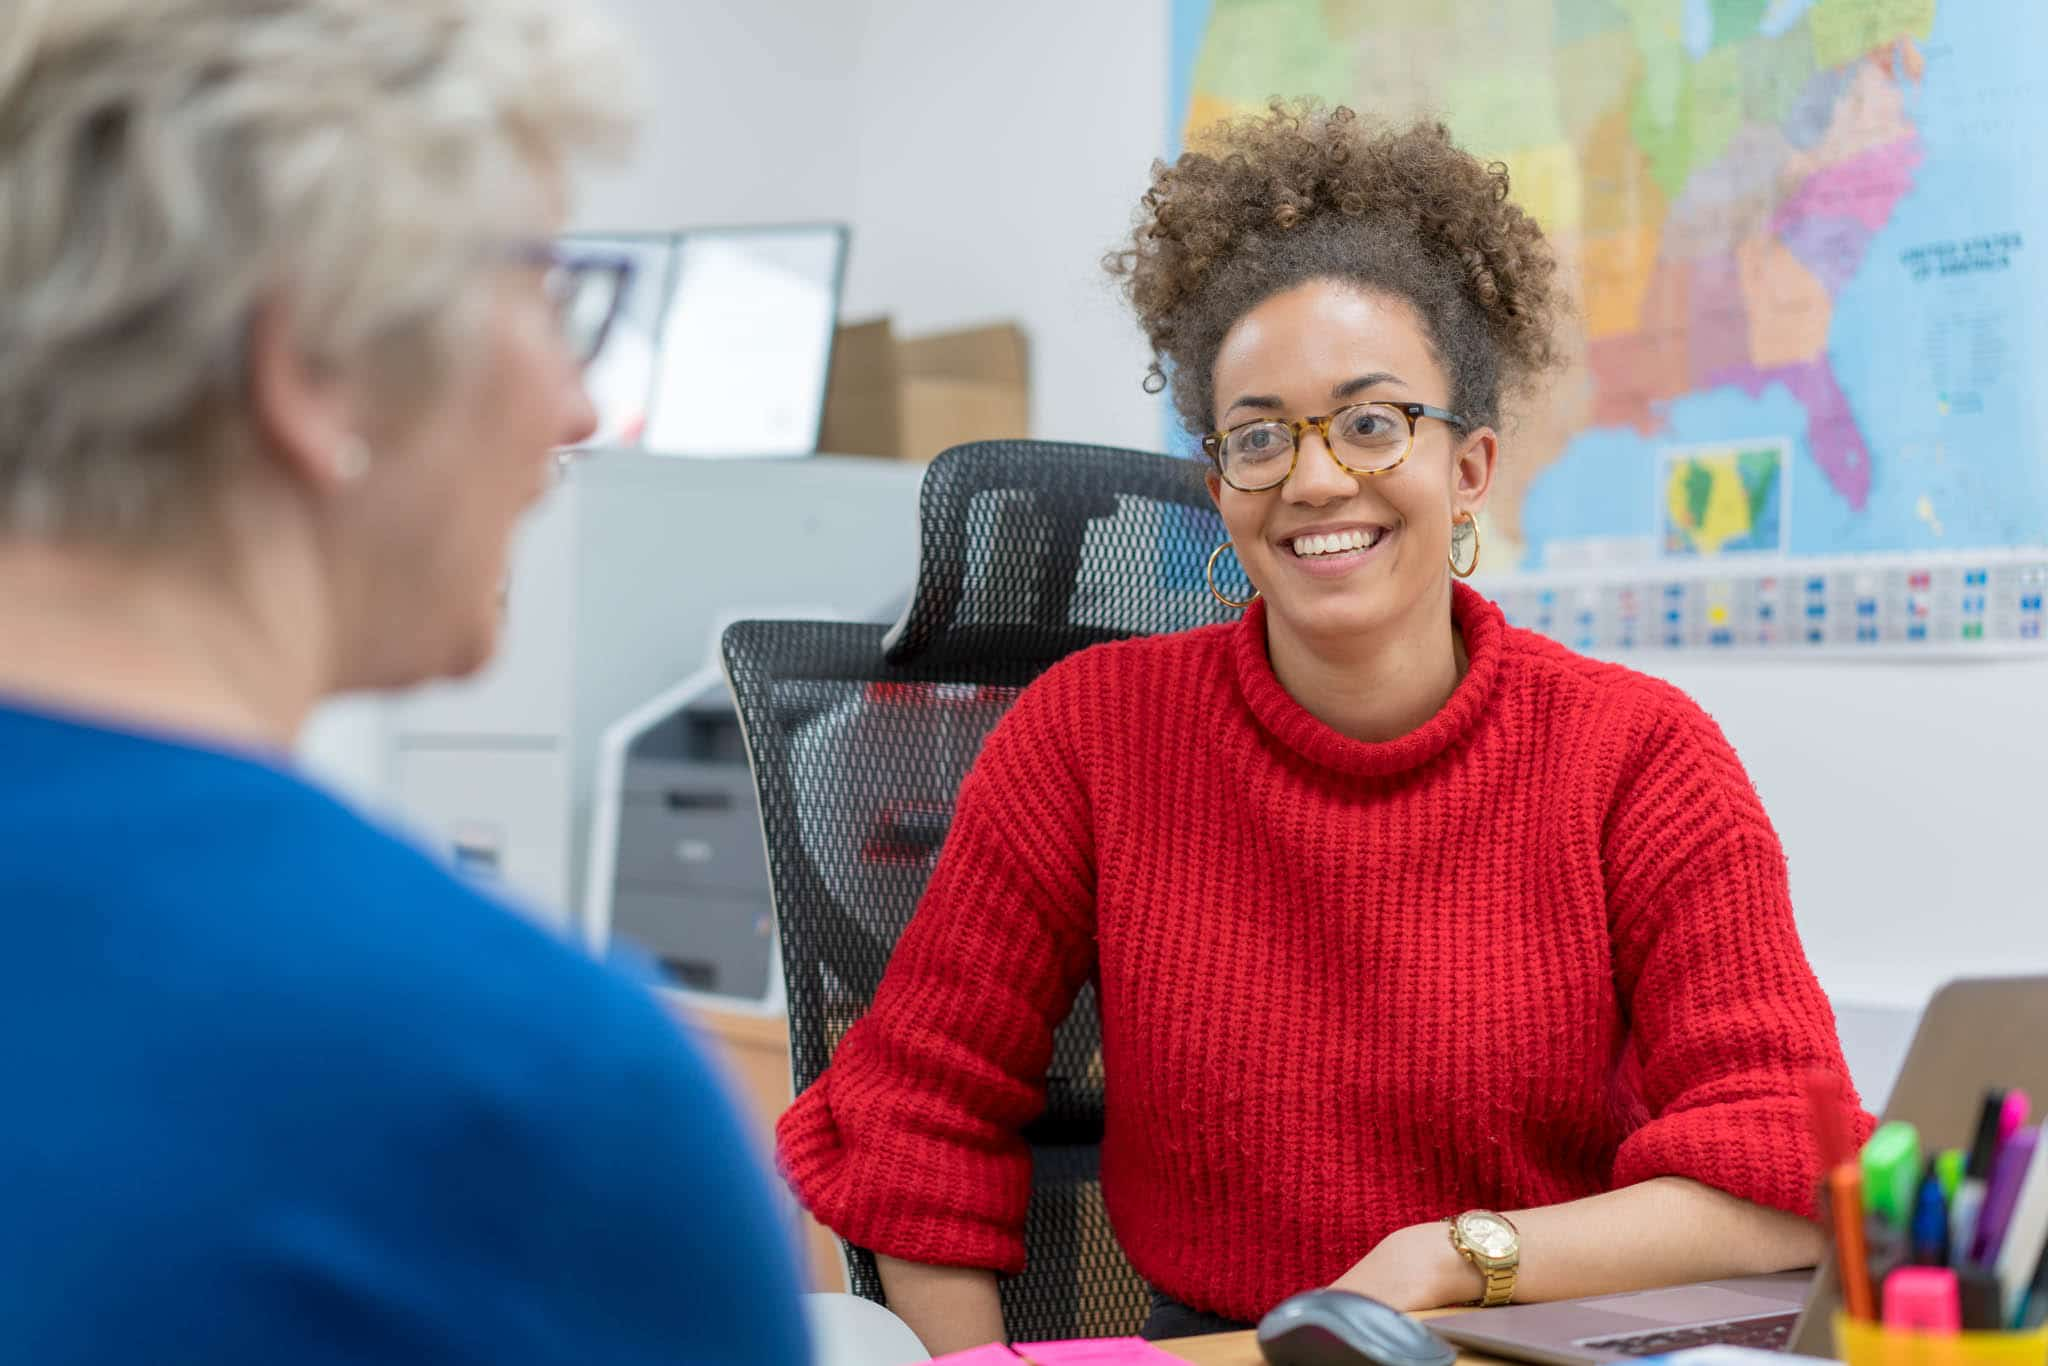 Charity Chamber of Commerce Membership, woman in red jumper sat at desk smiling